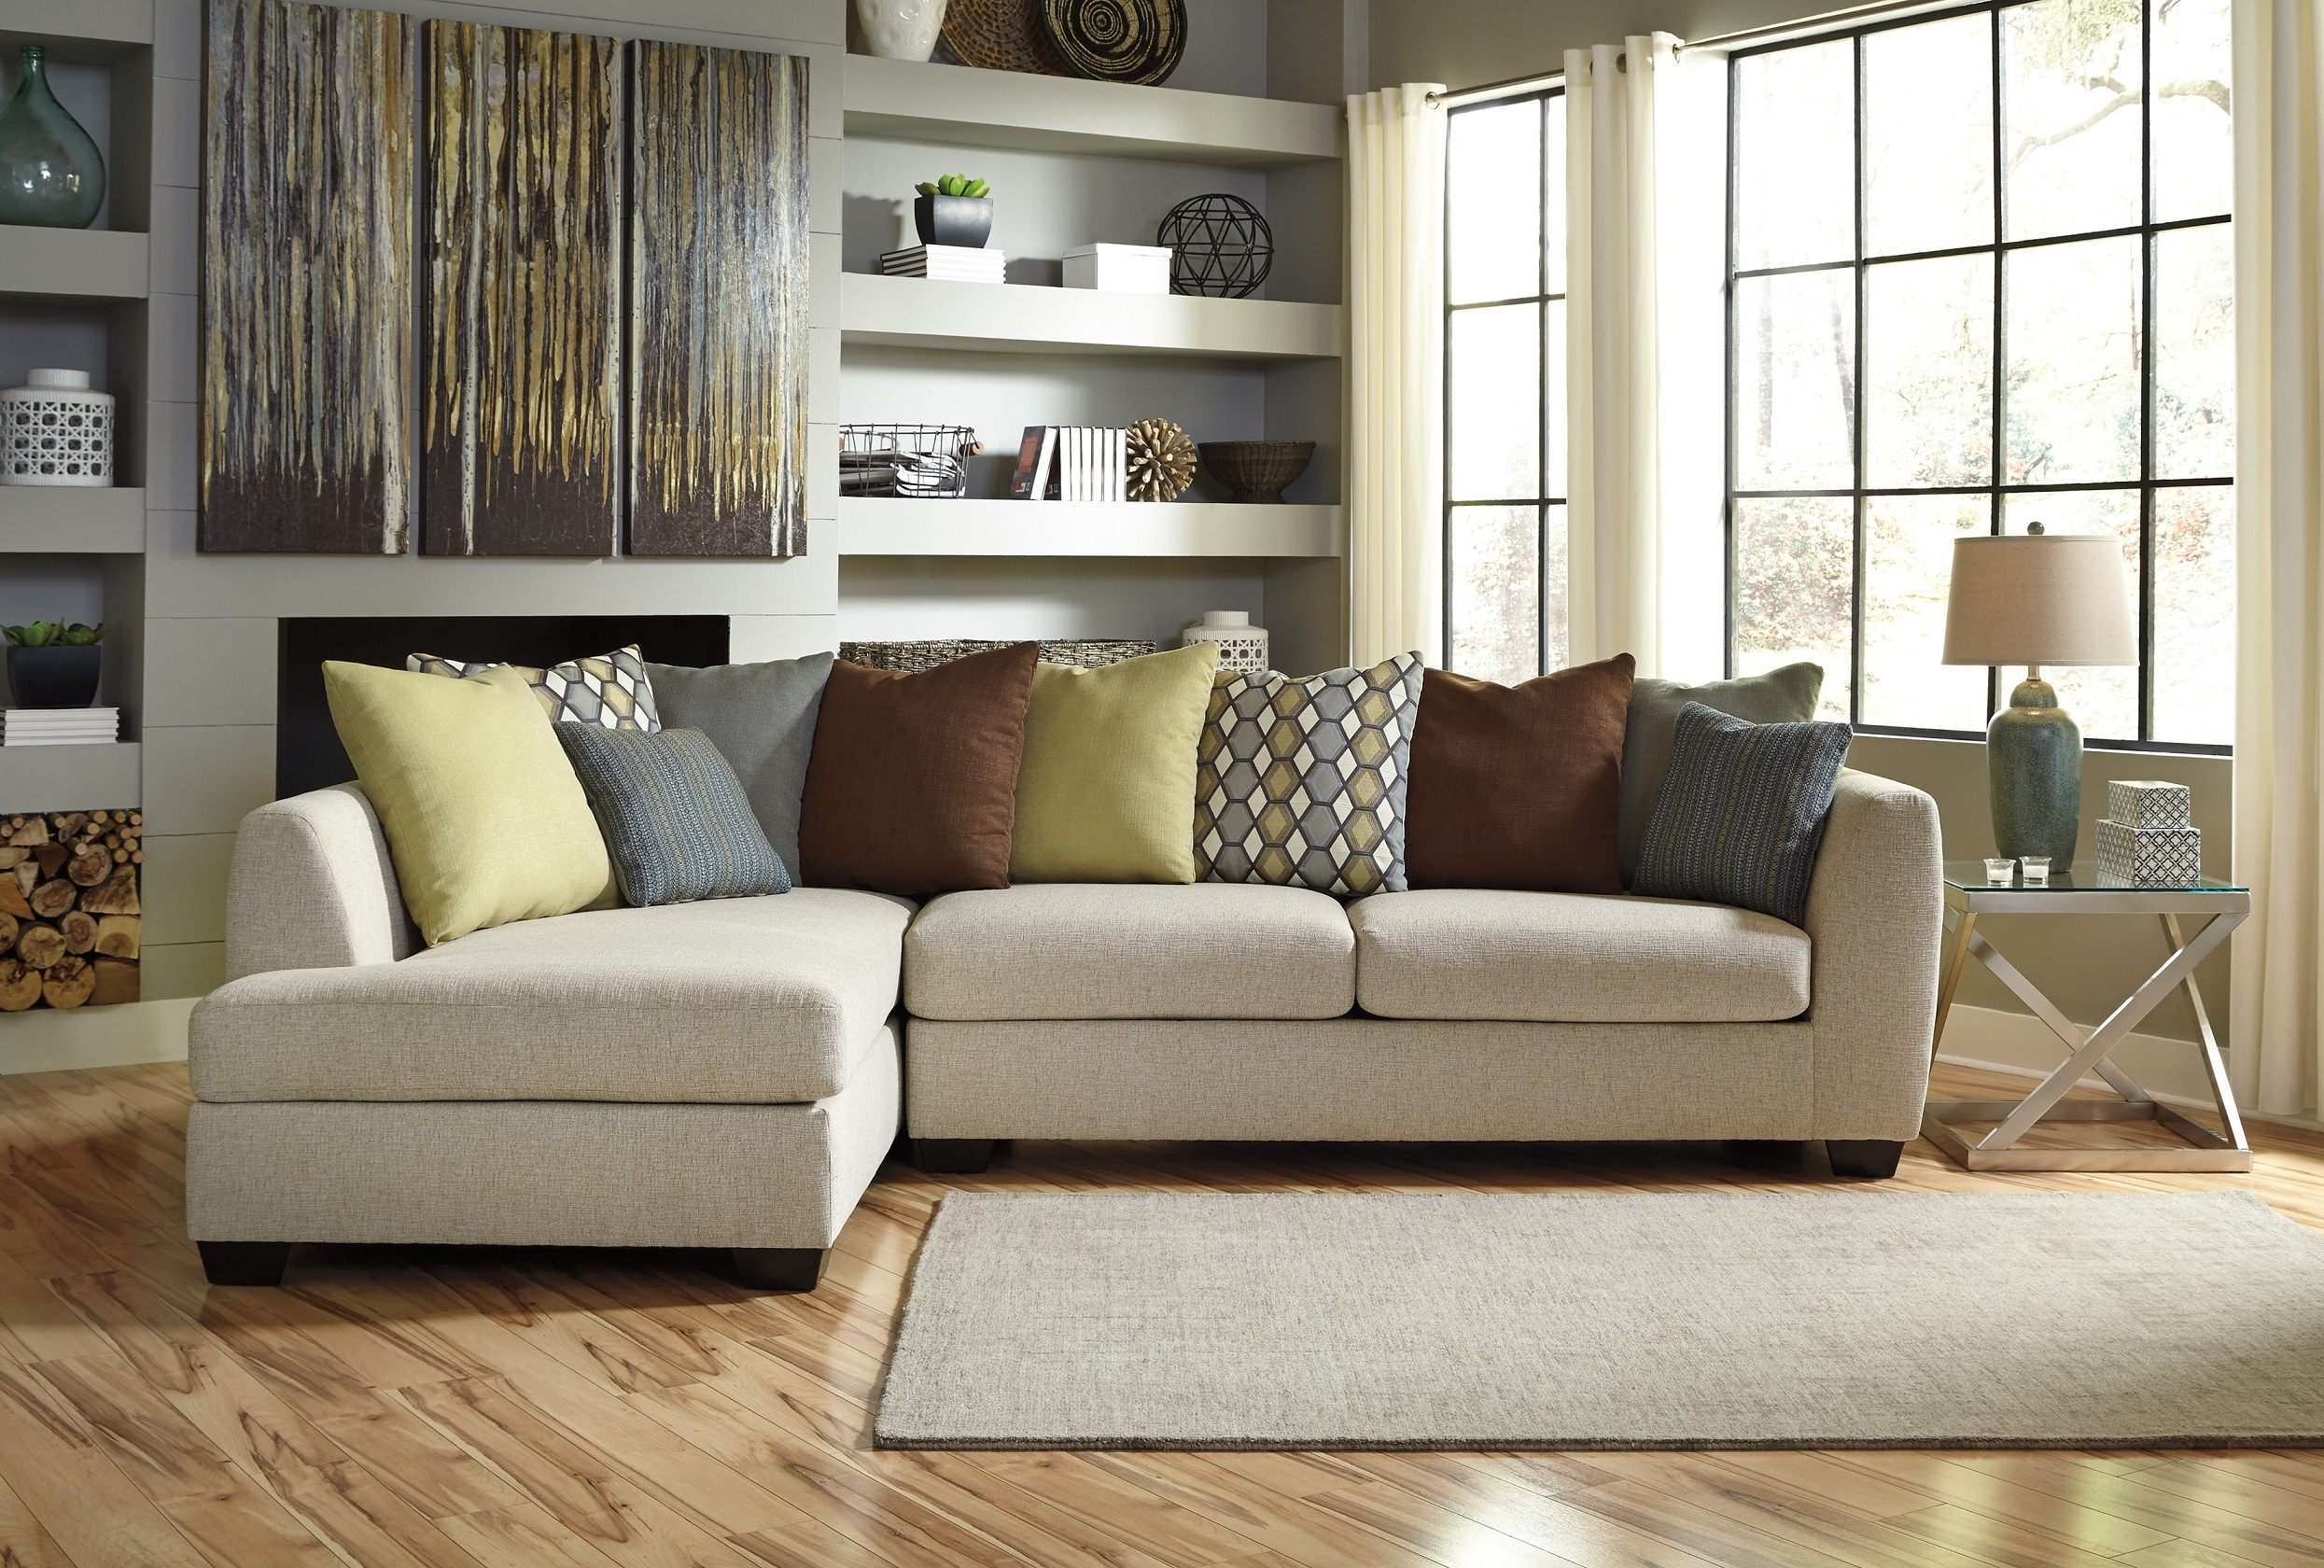 Sectional Sofas At Ashley Pertaining To Most Up To Date Love Sofa Bed Sofa Bed Sectional Queen Contemporary Loveseat Sofas (View 10 of 20)